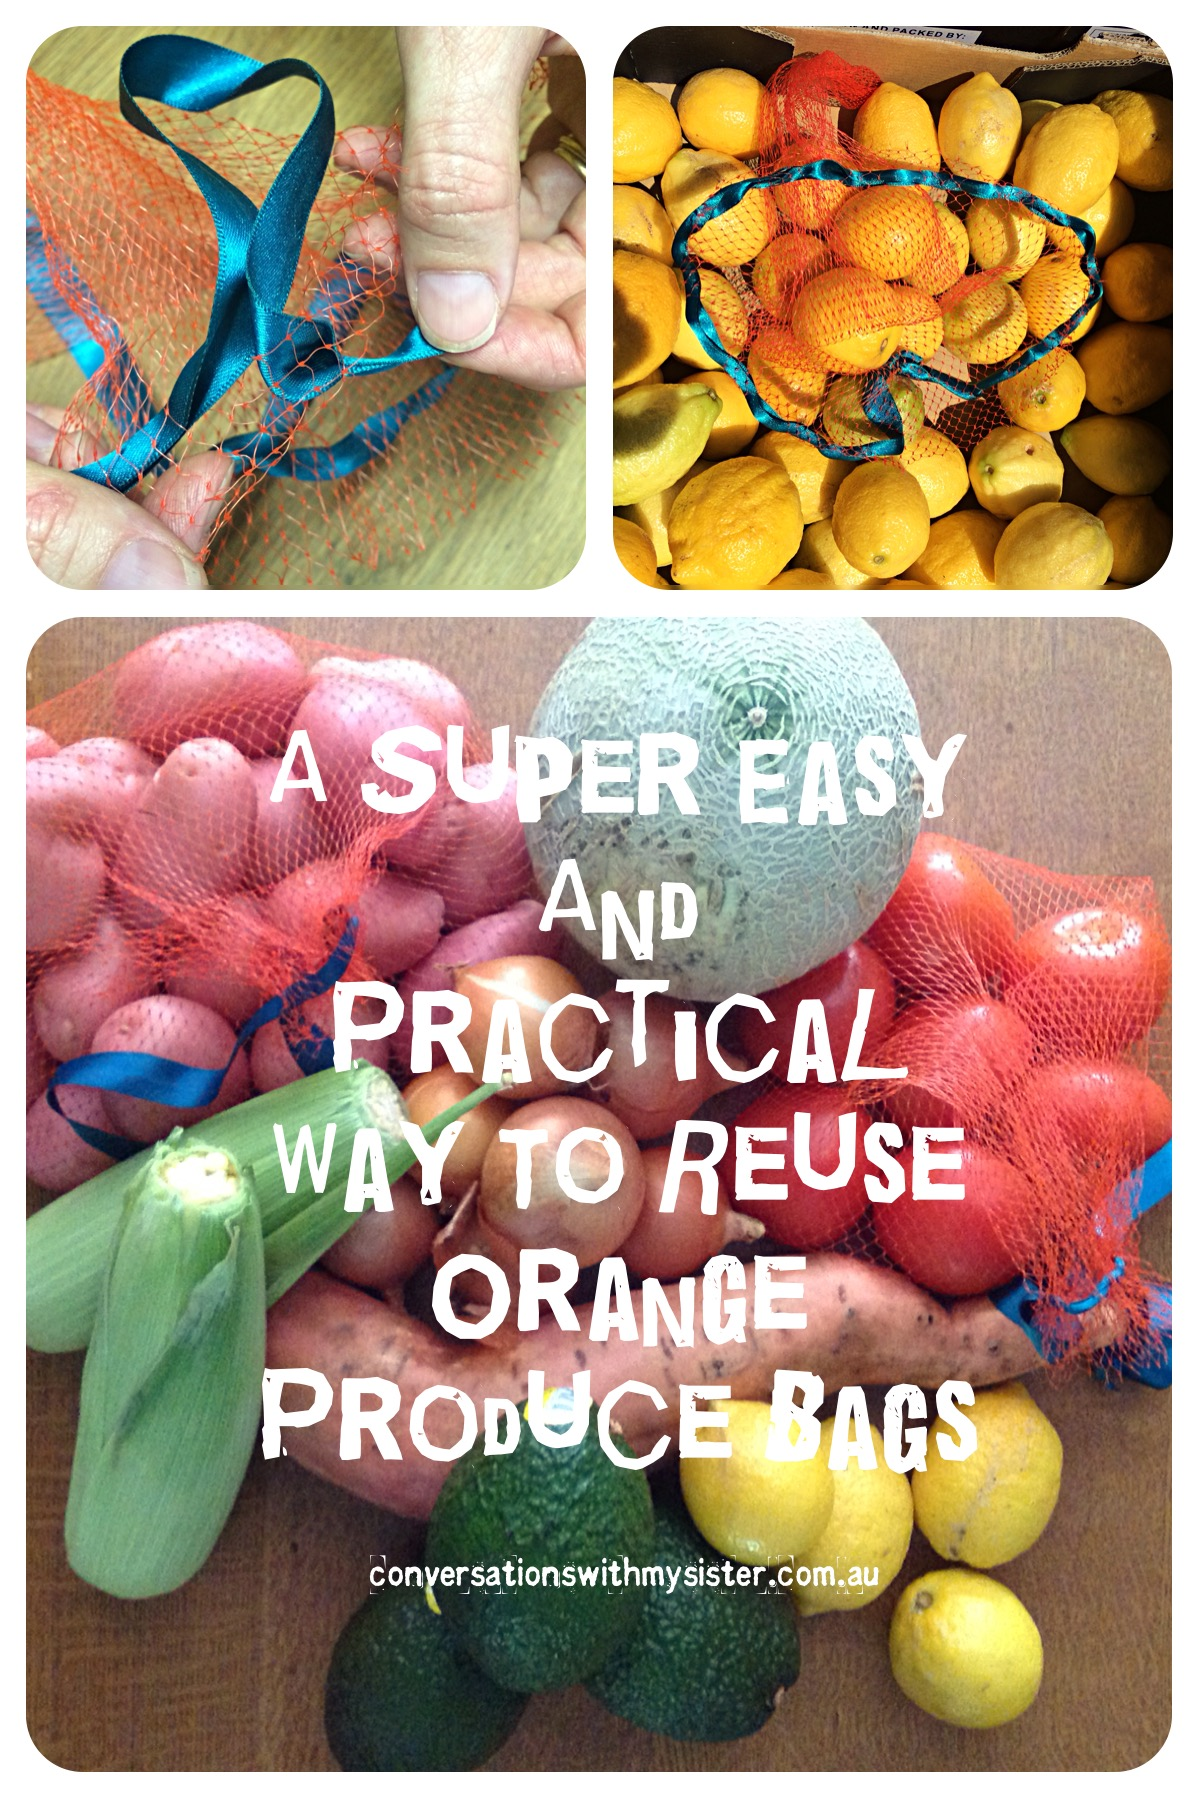 ||A Super Easy and Practical Way To Reuse Orange Produce Bags || conversationswithmysister.com.au